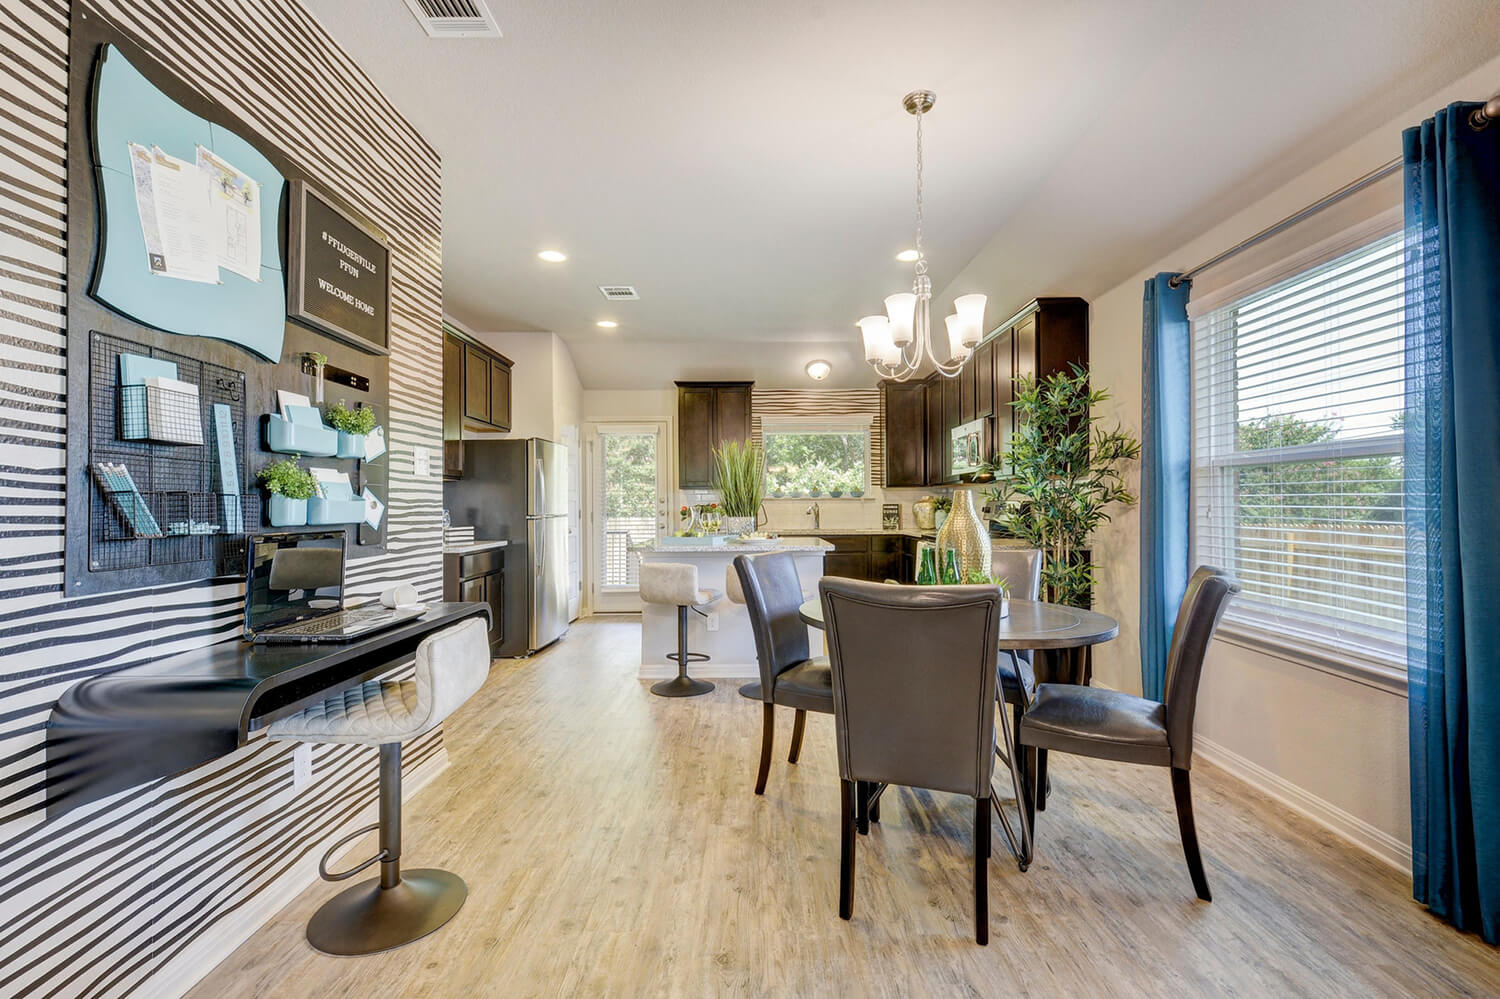 Walden Square Model Home Dining Room Photo